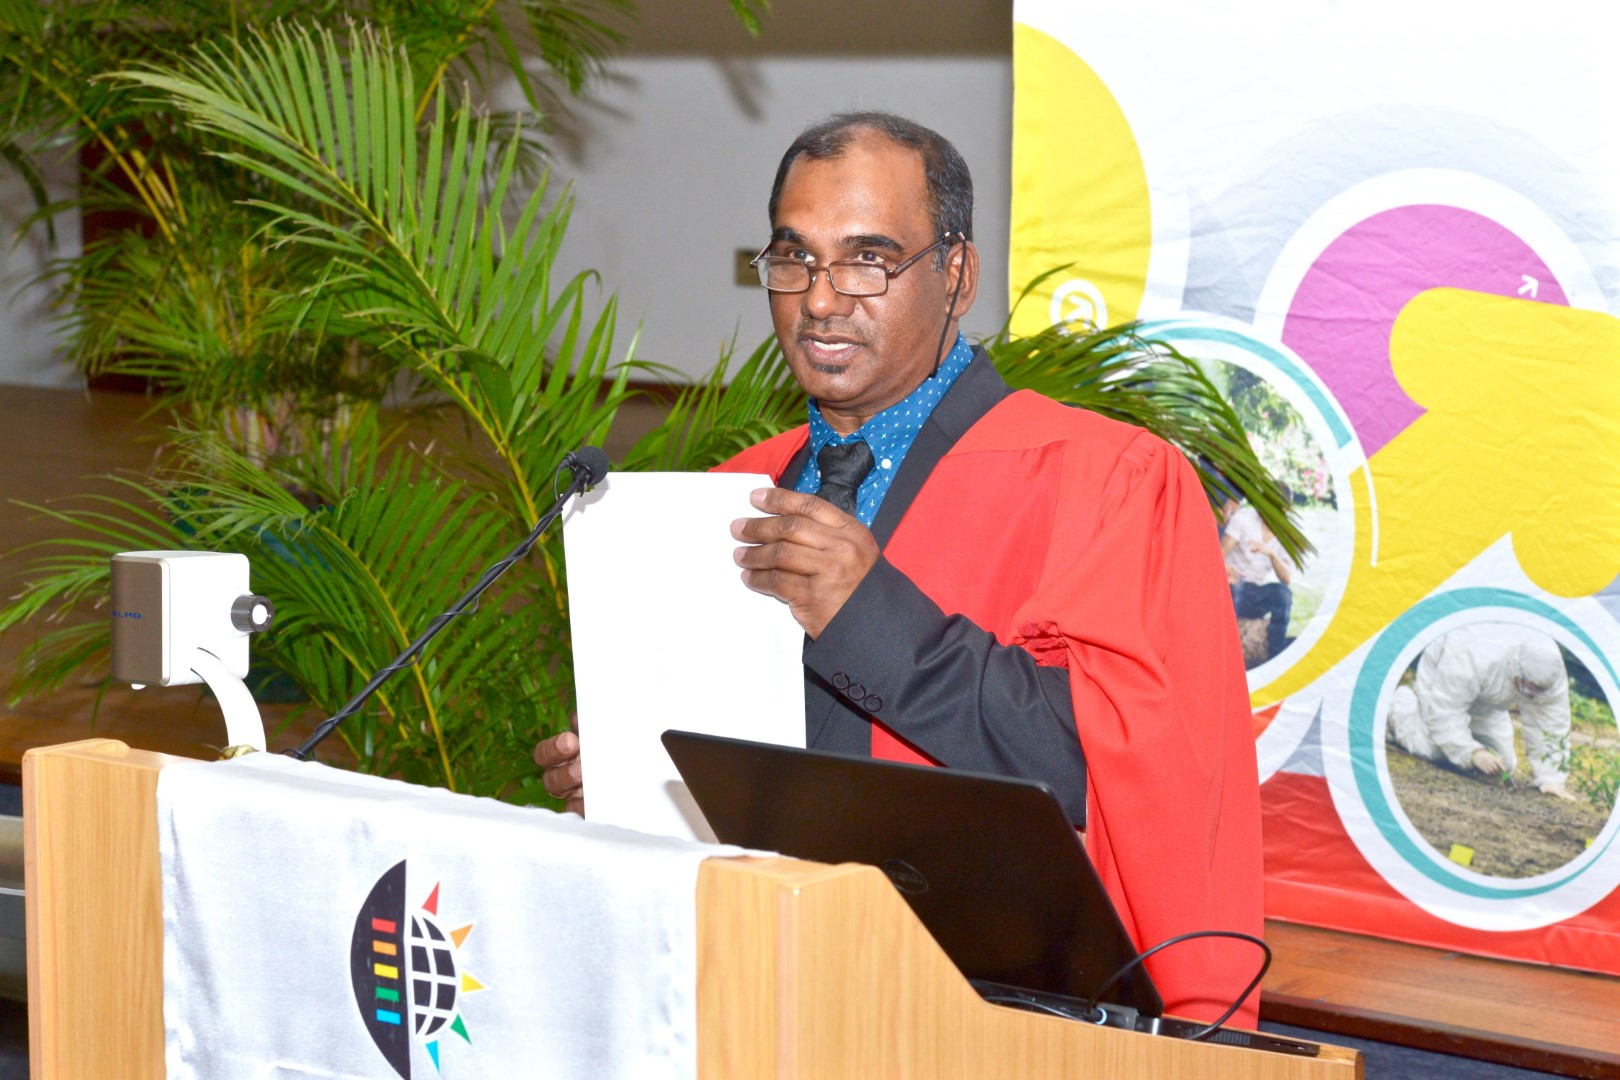 Inaugural Lecture Tackles Teaching & Transforming Education